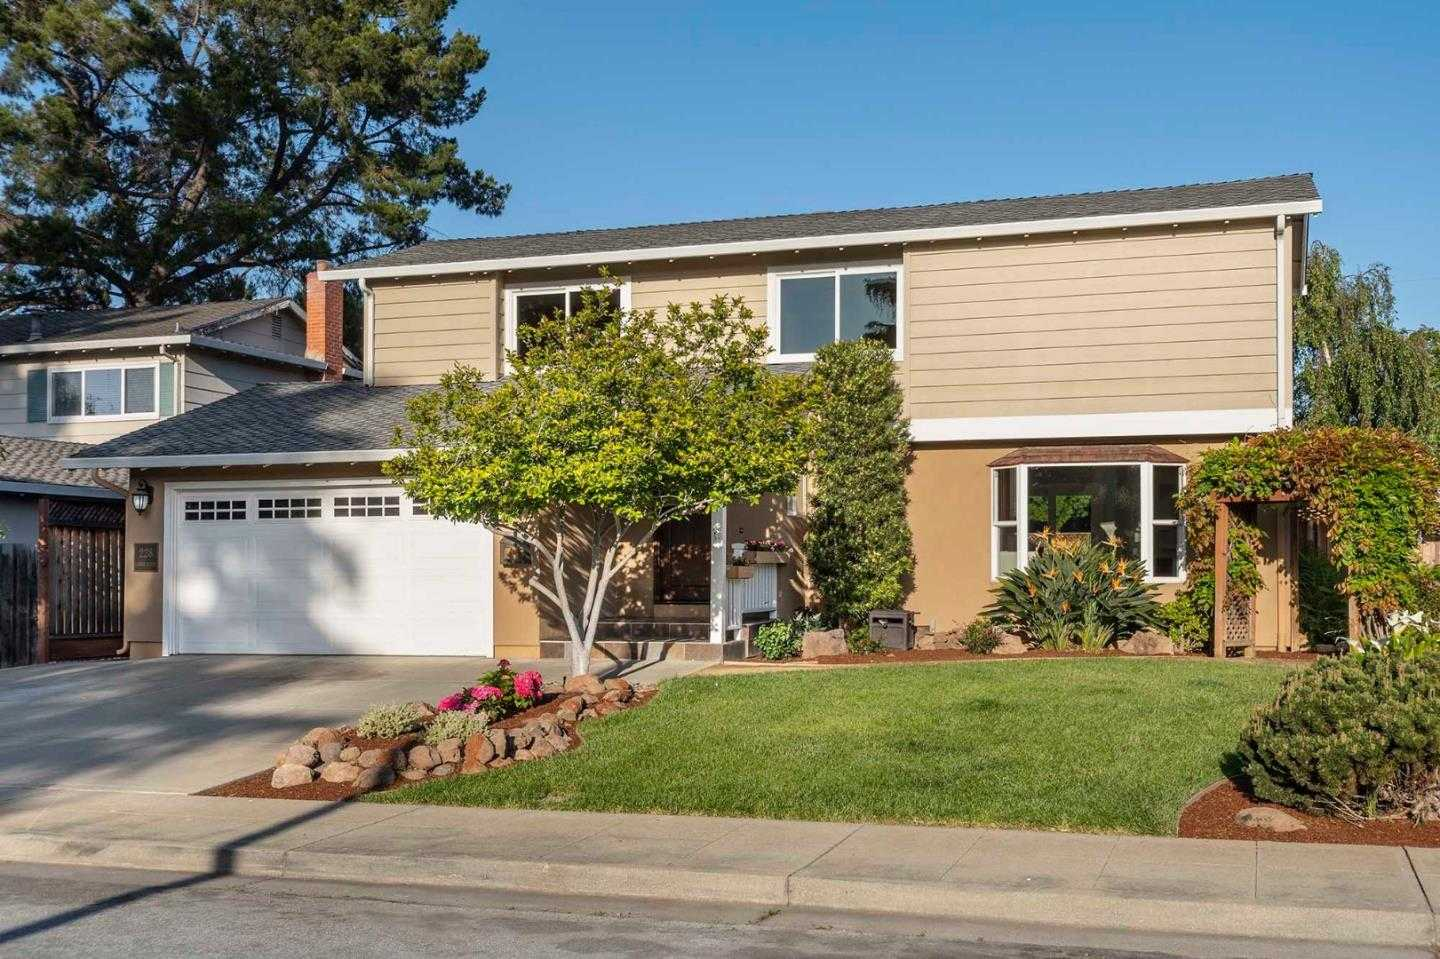 $2,498,000 - 5Br/3Ba -  for Sale in Sunnyvale